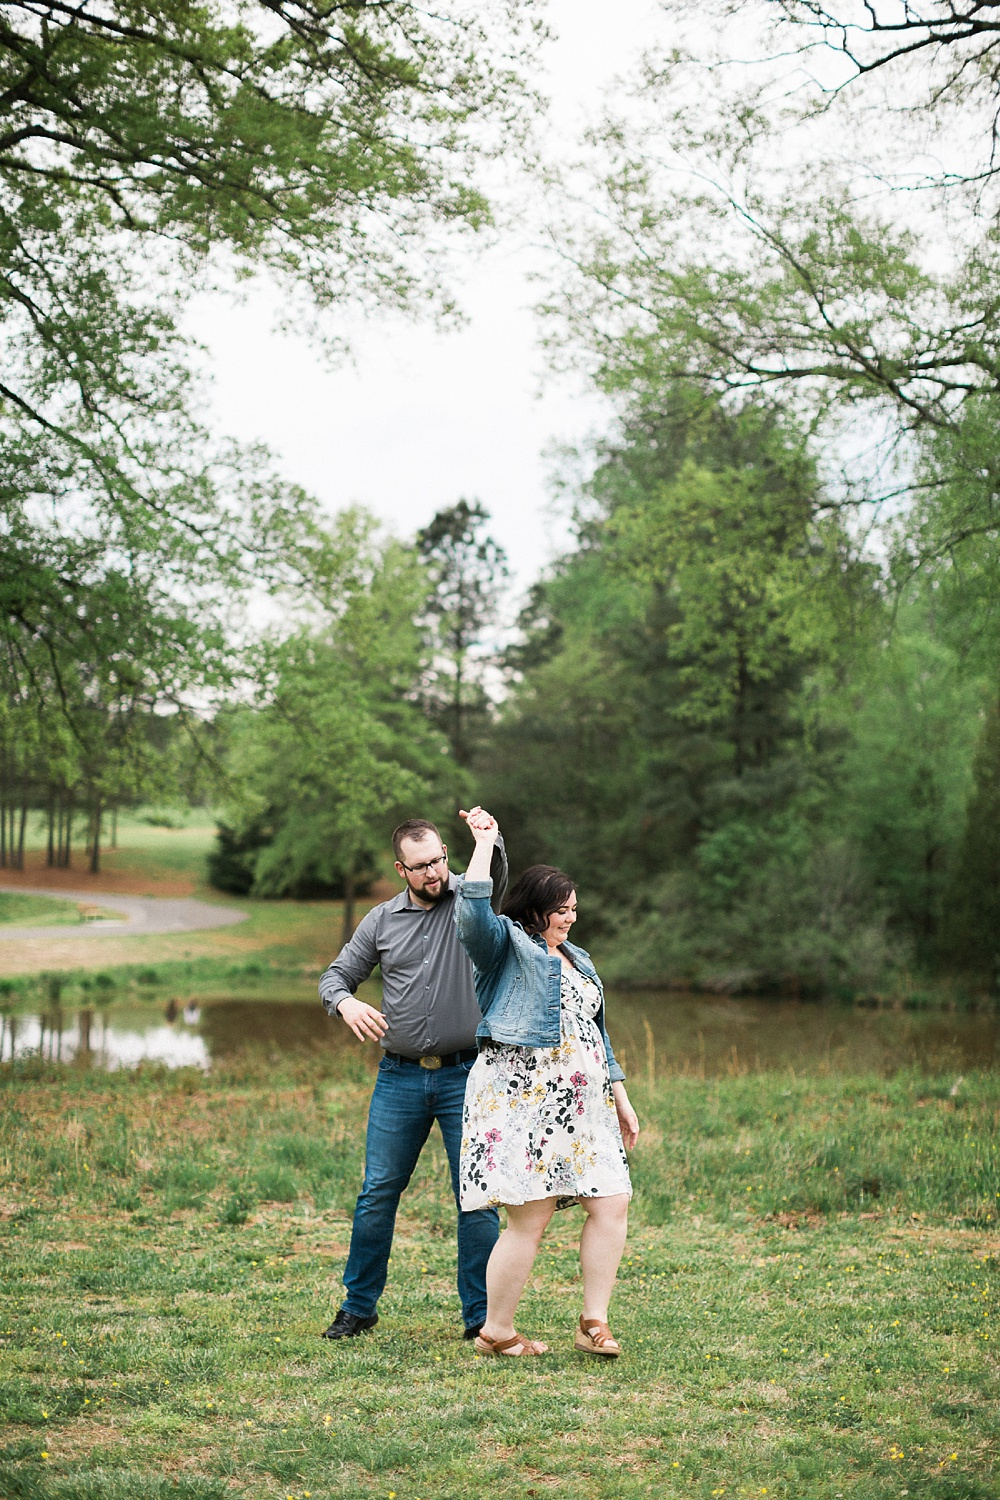 carroll joyner park wake forest, nc engagement session